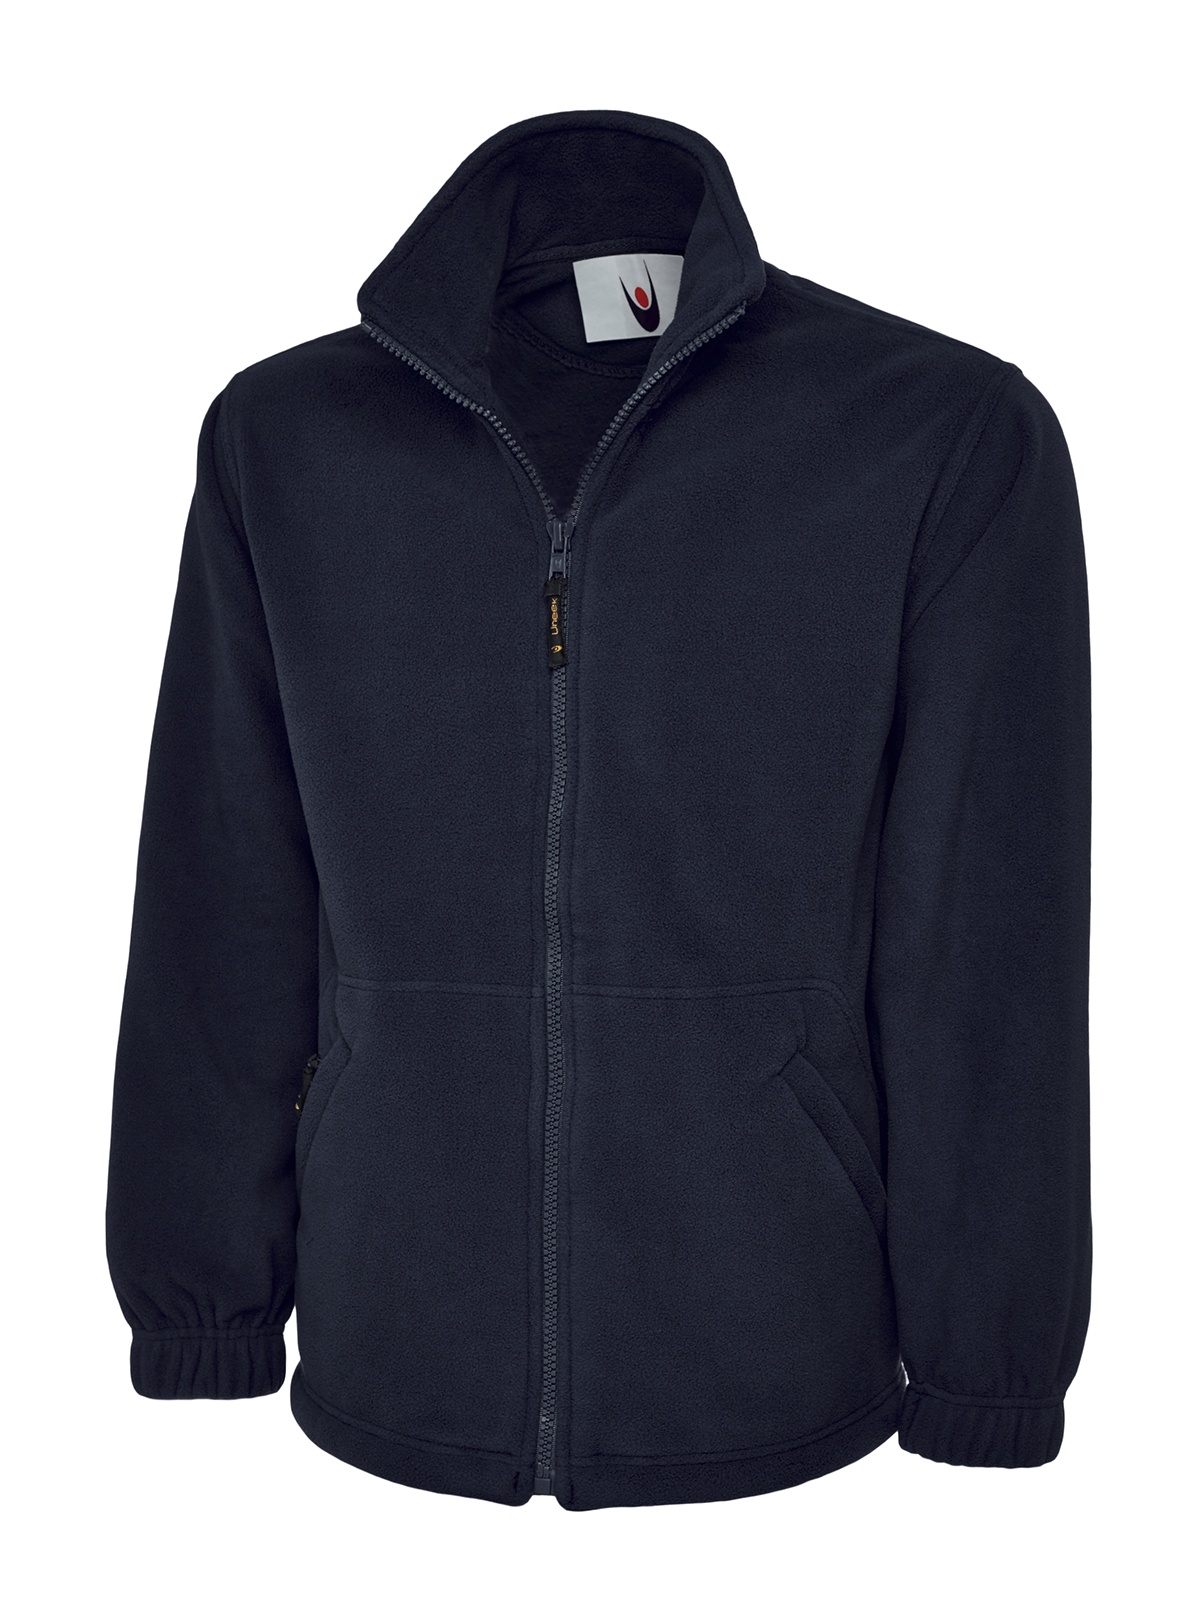 Uneek UC604 Classic Full Zip Micro Fleece Jacket B